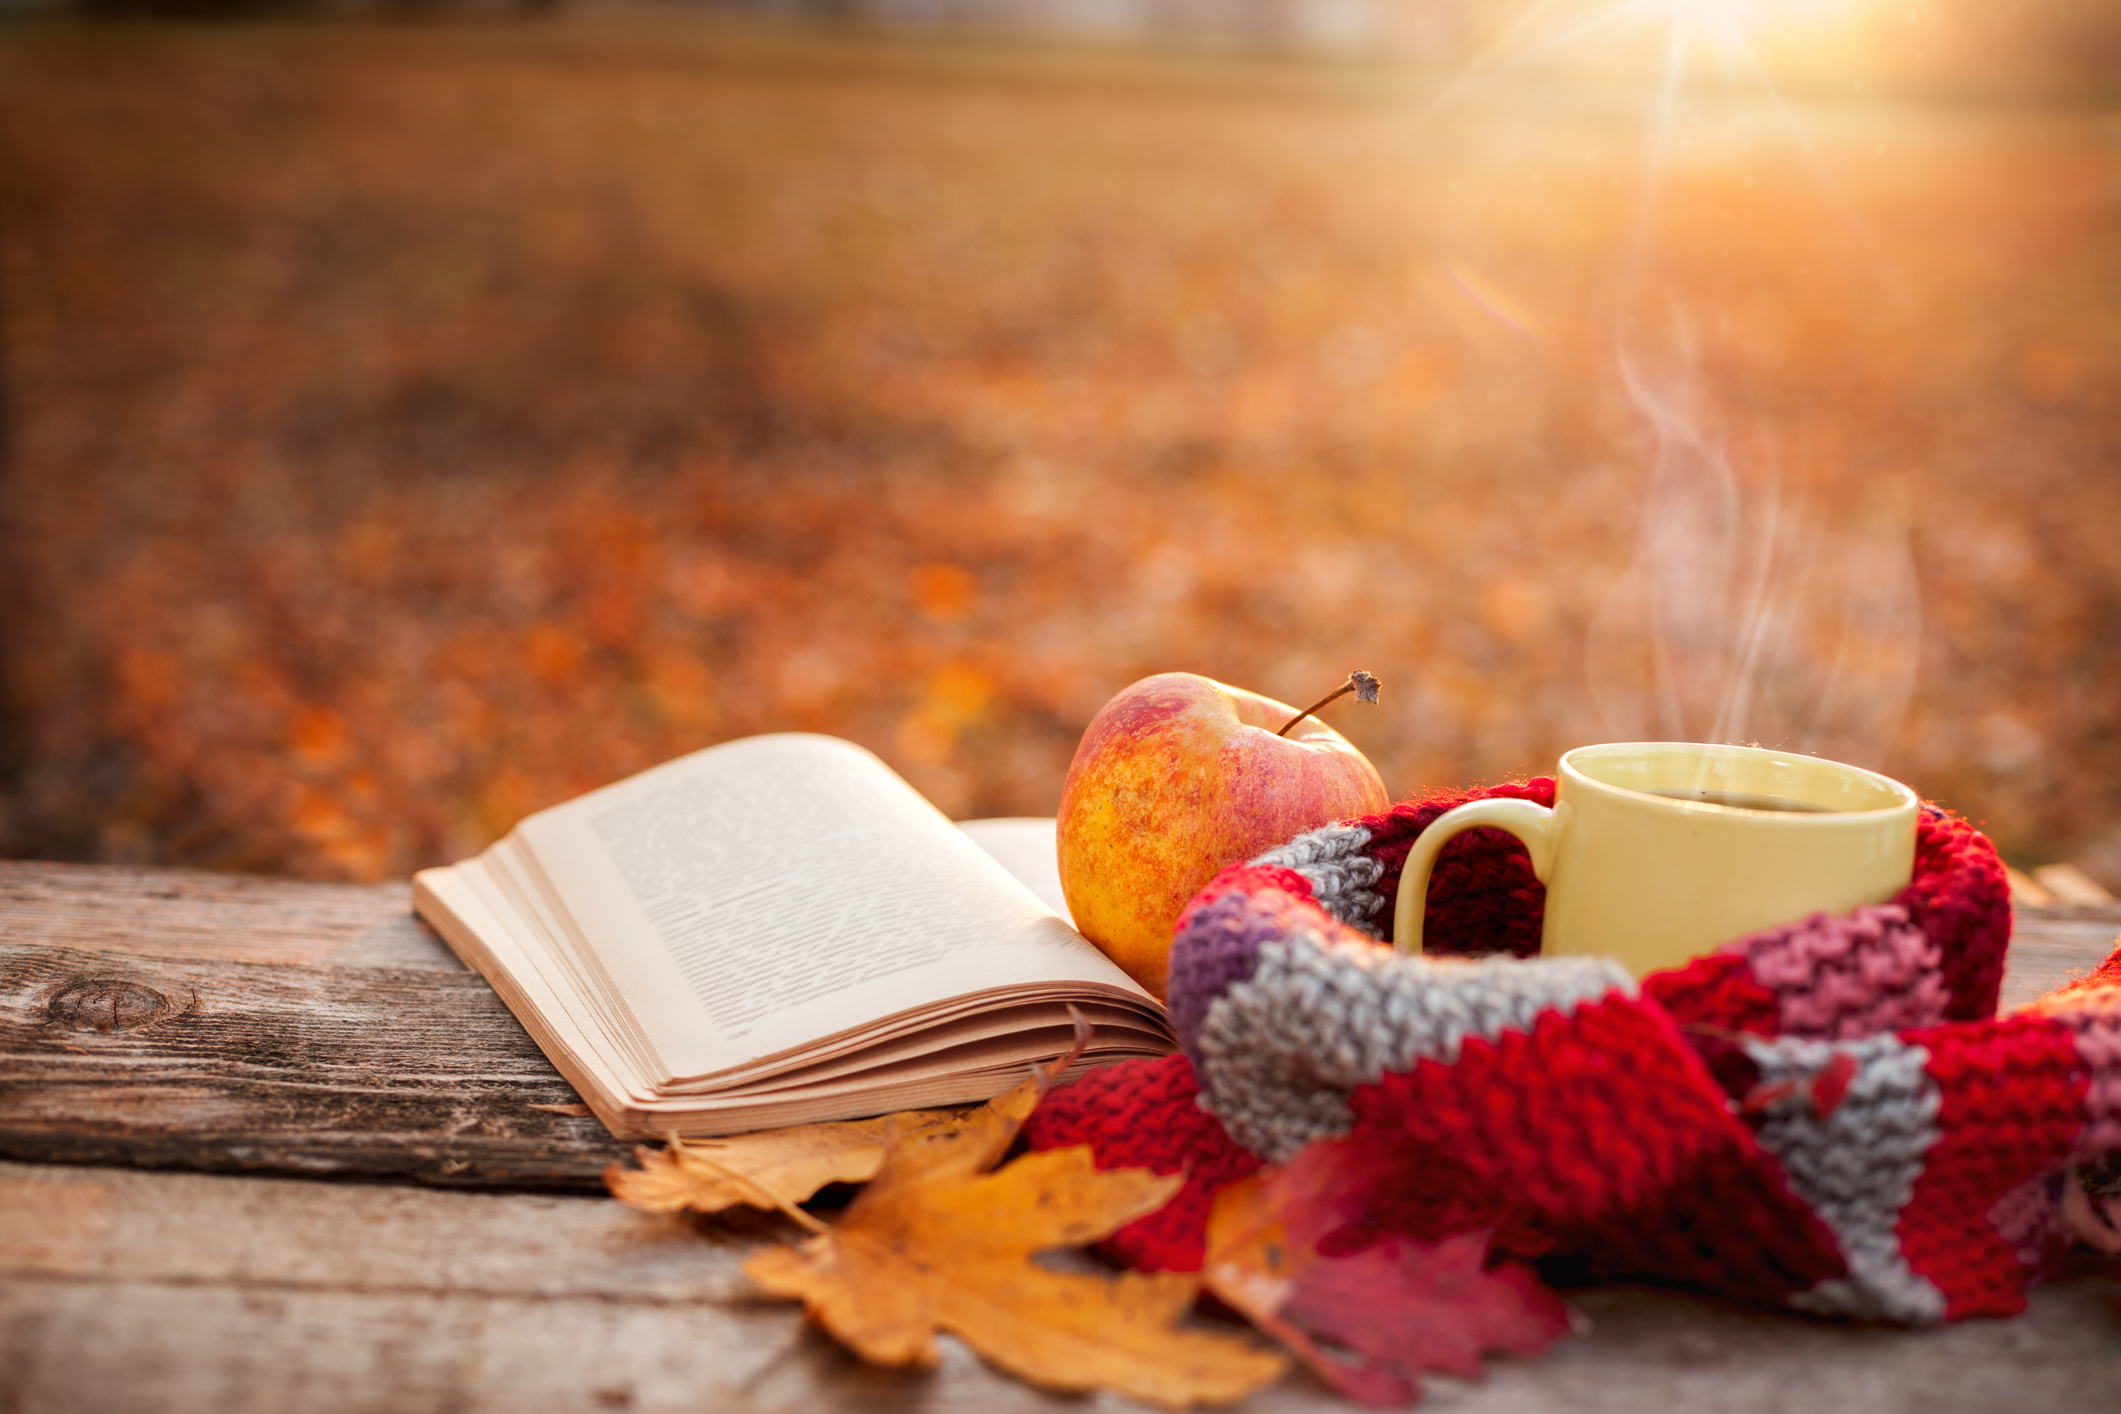 Book With Fall Leaves, Mug, And Scarf